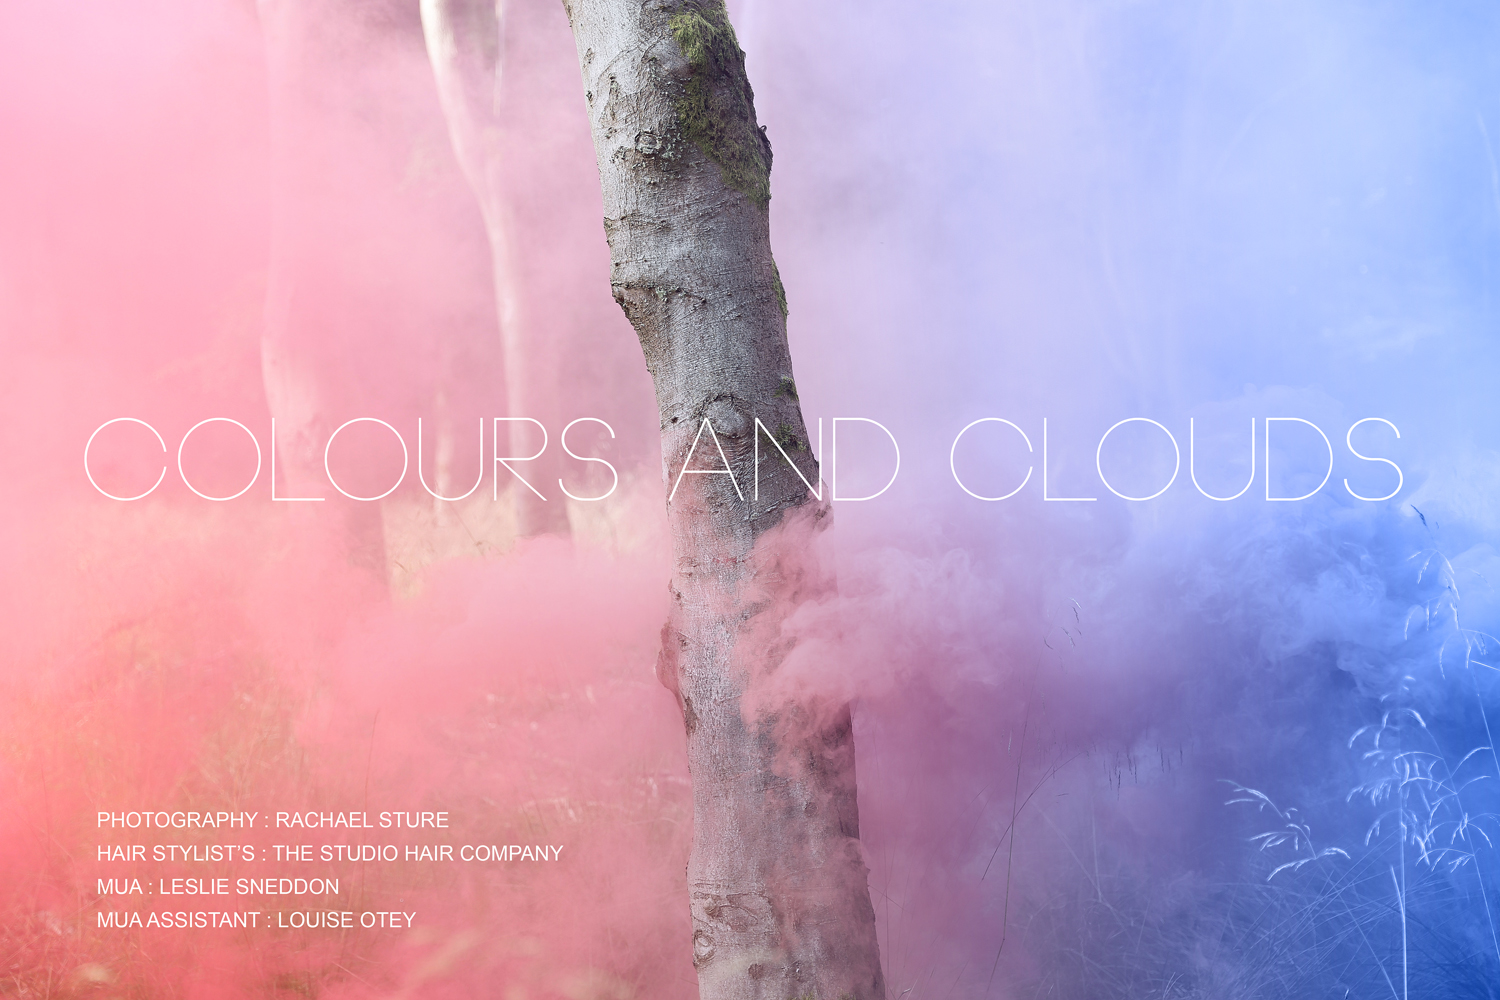 Colours and Clouds.jpg